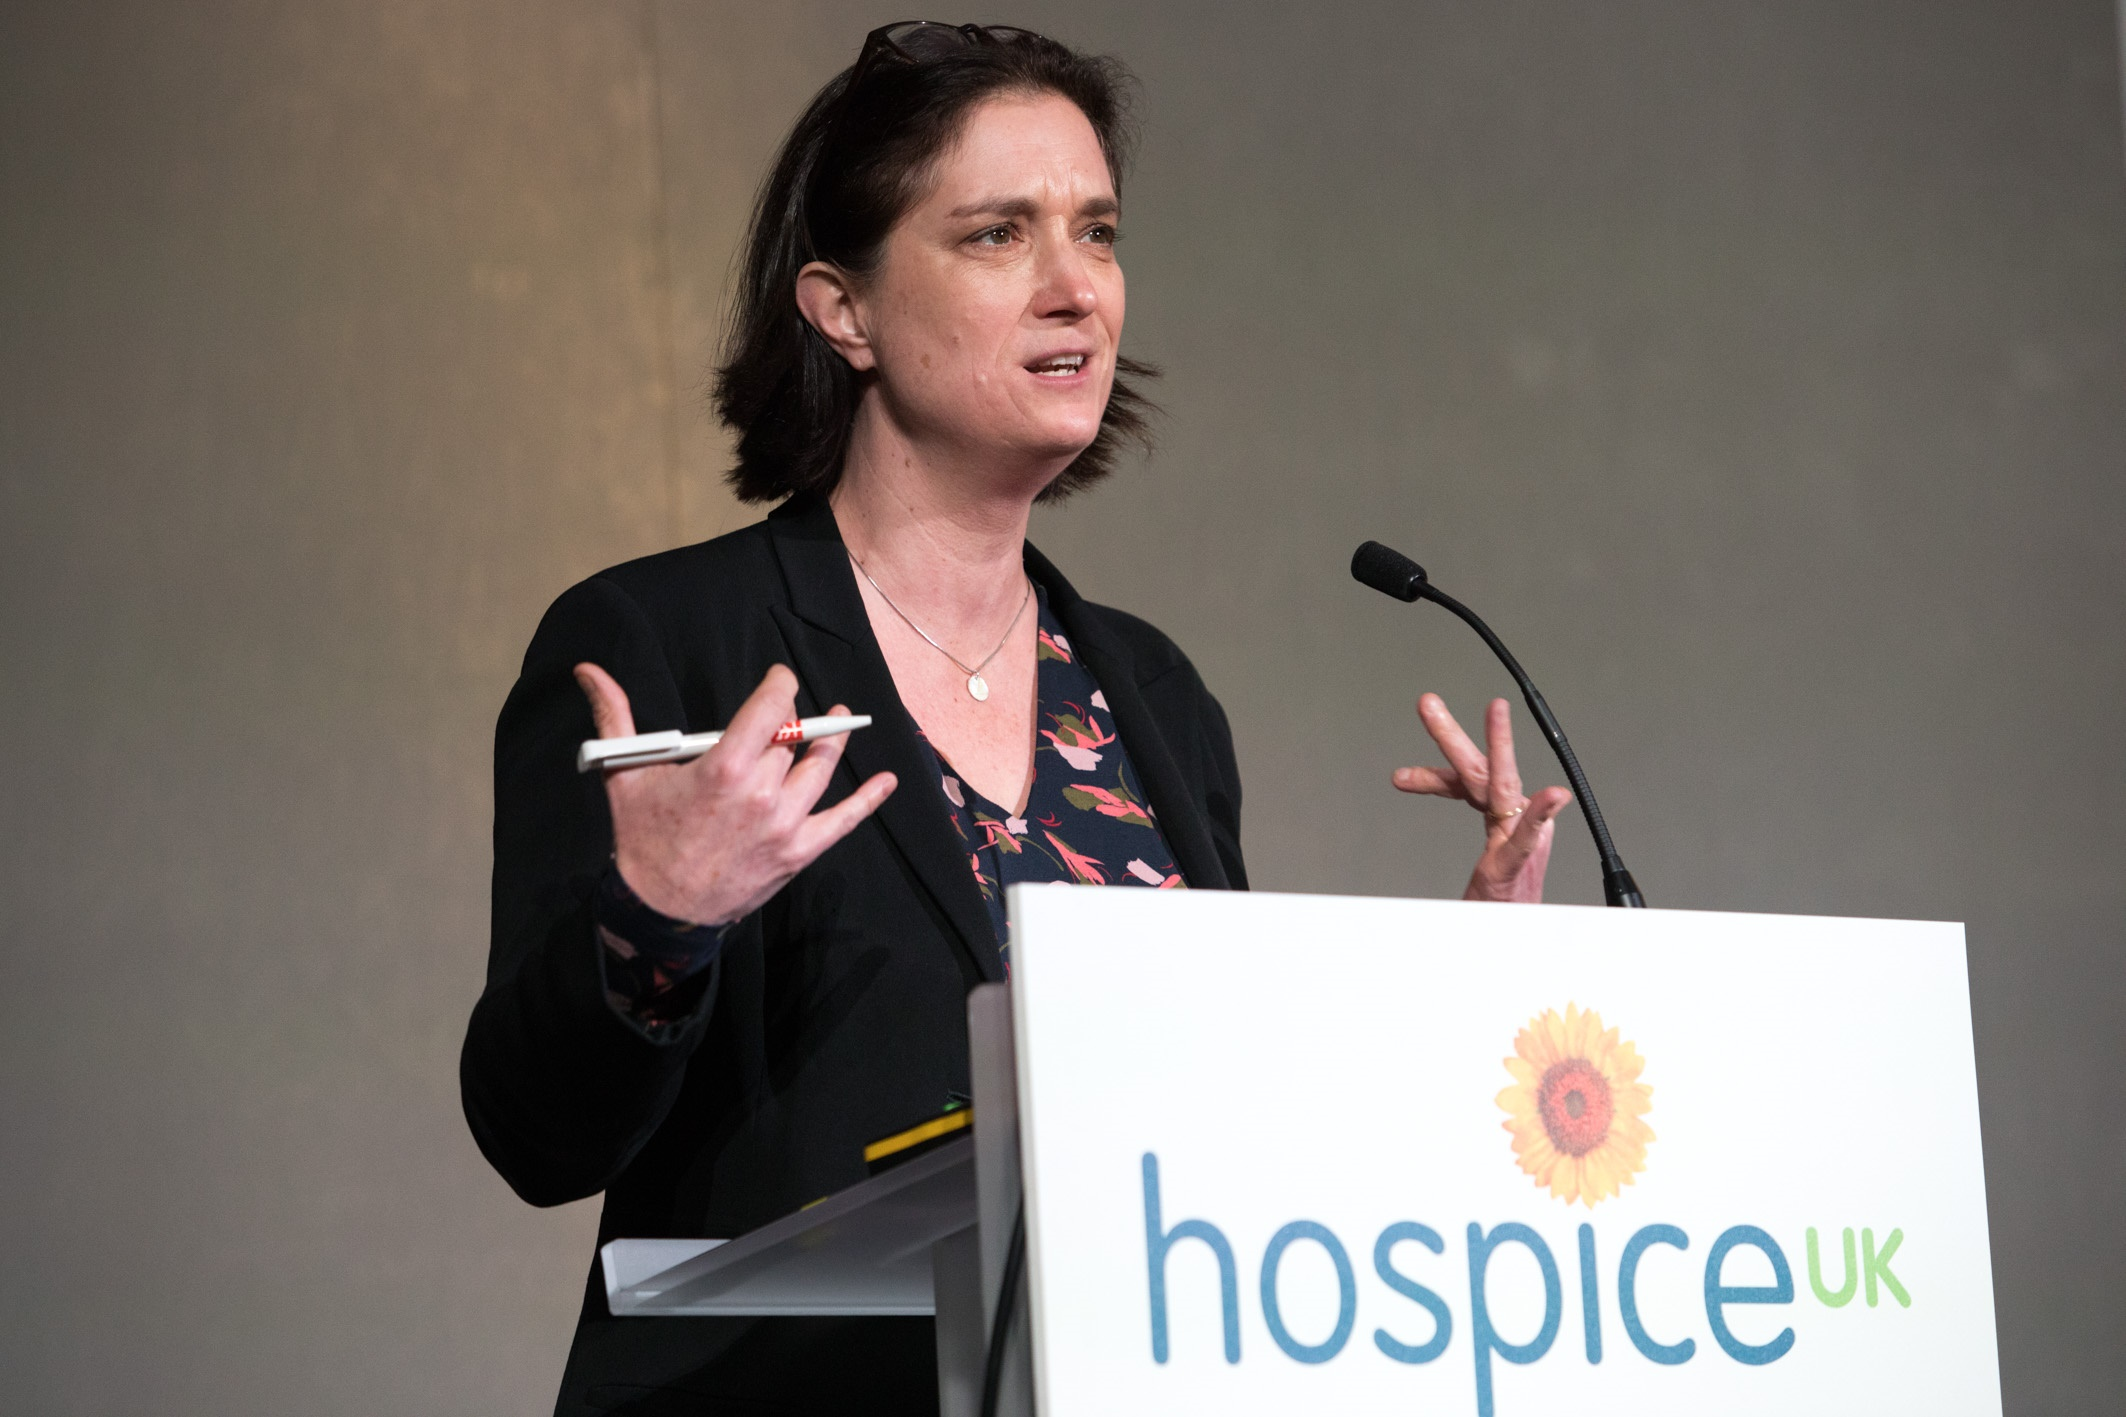 Sharing your work on Hospice UK's national stage